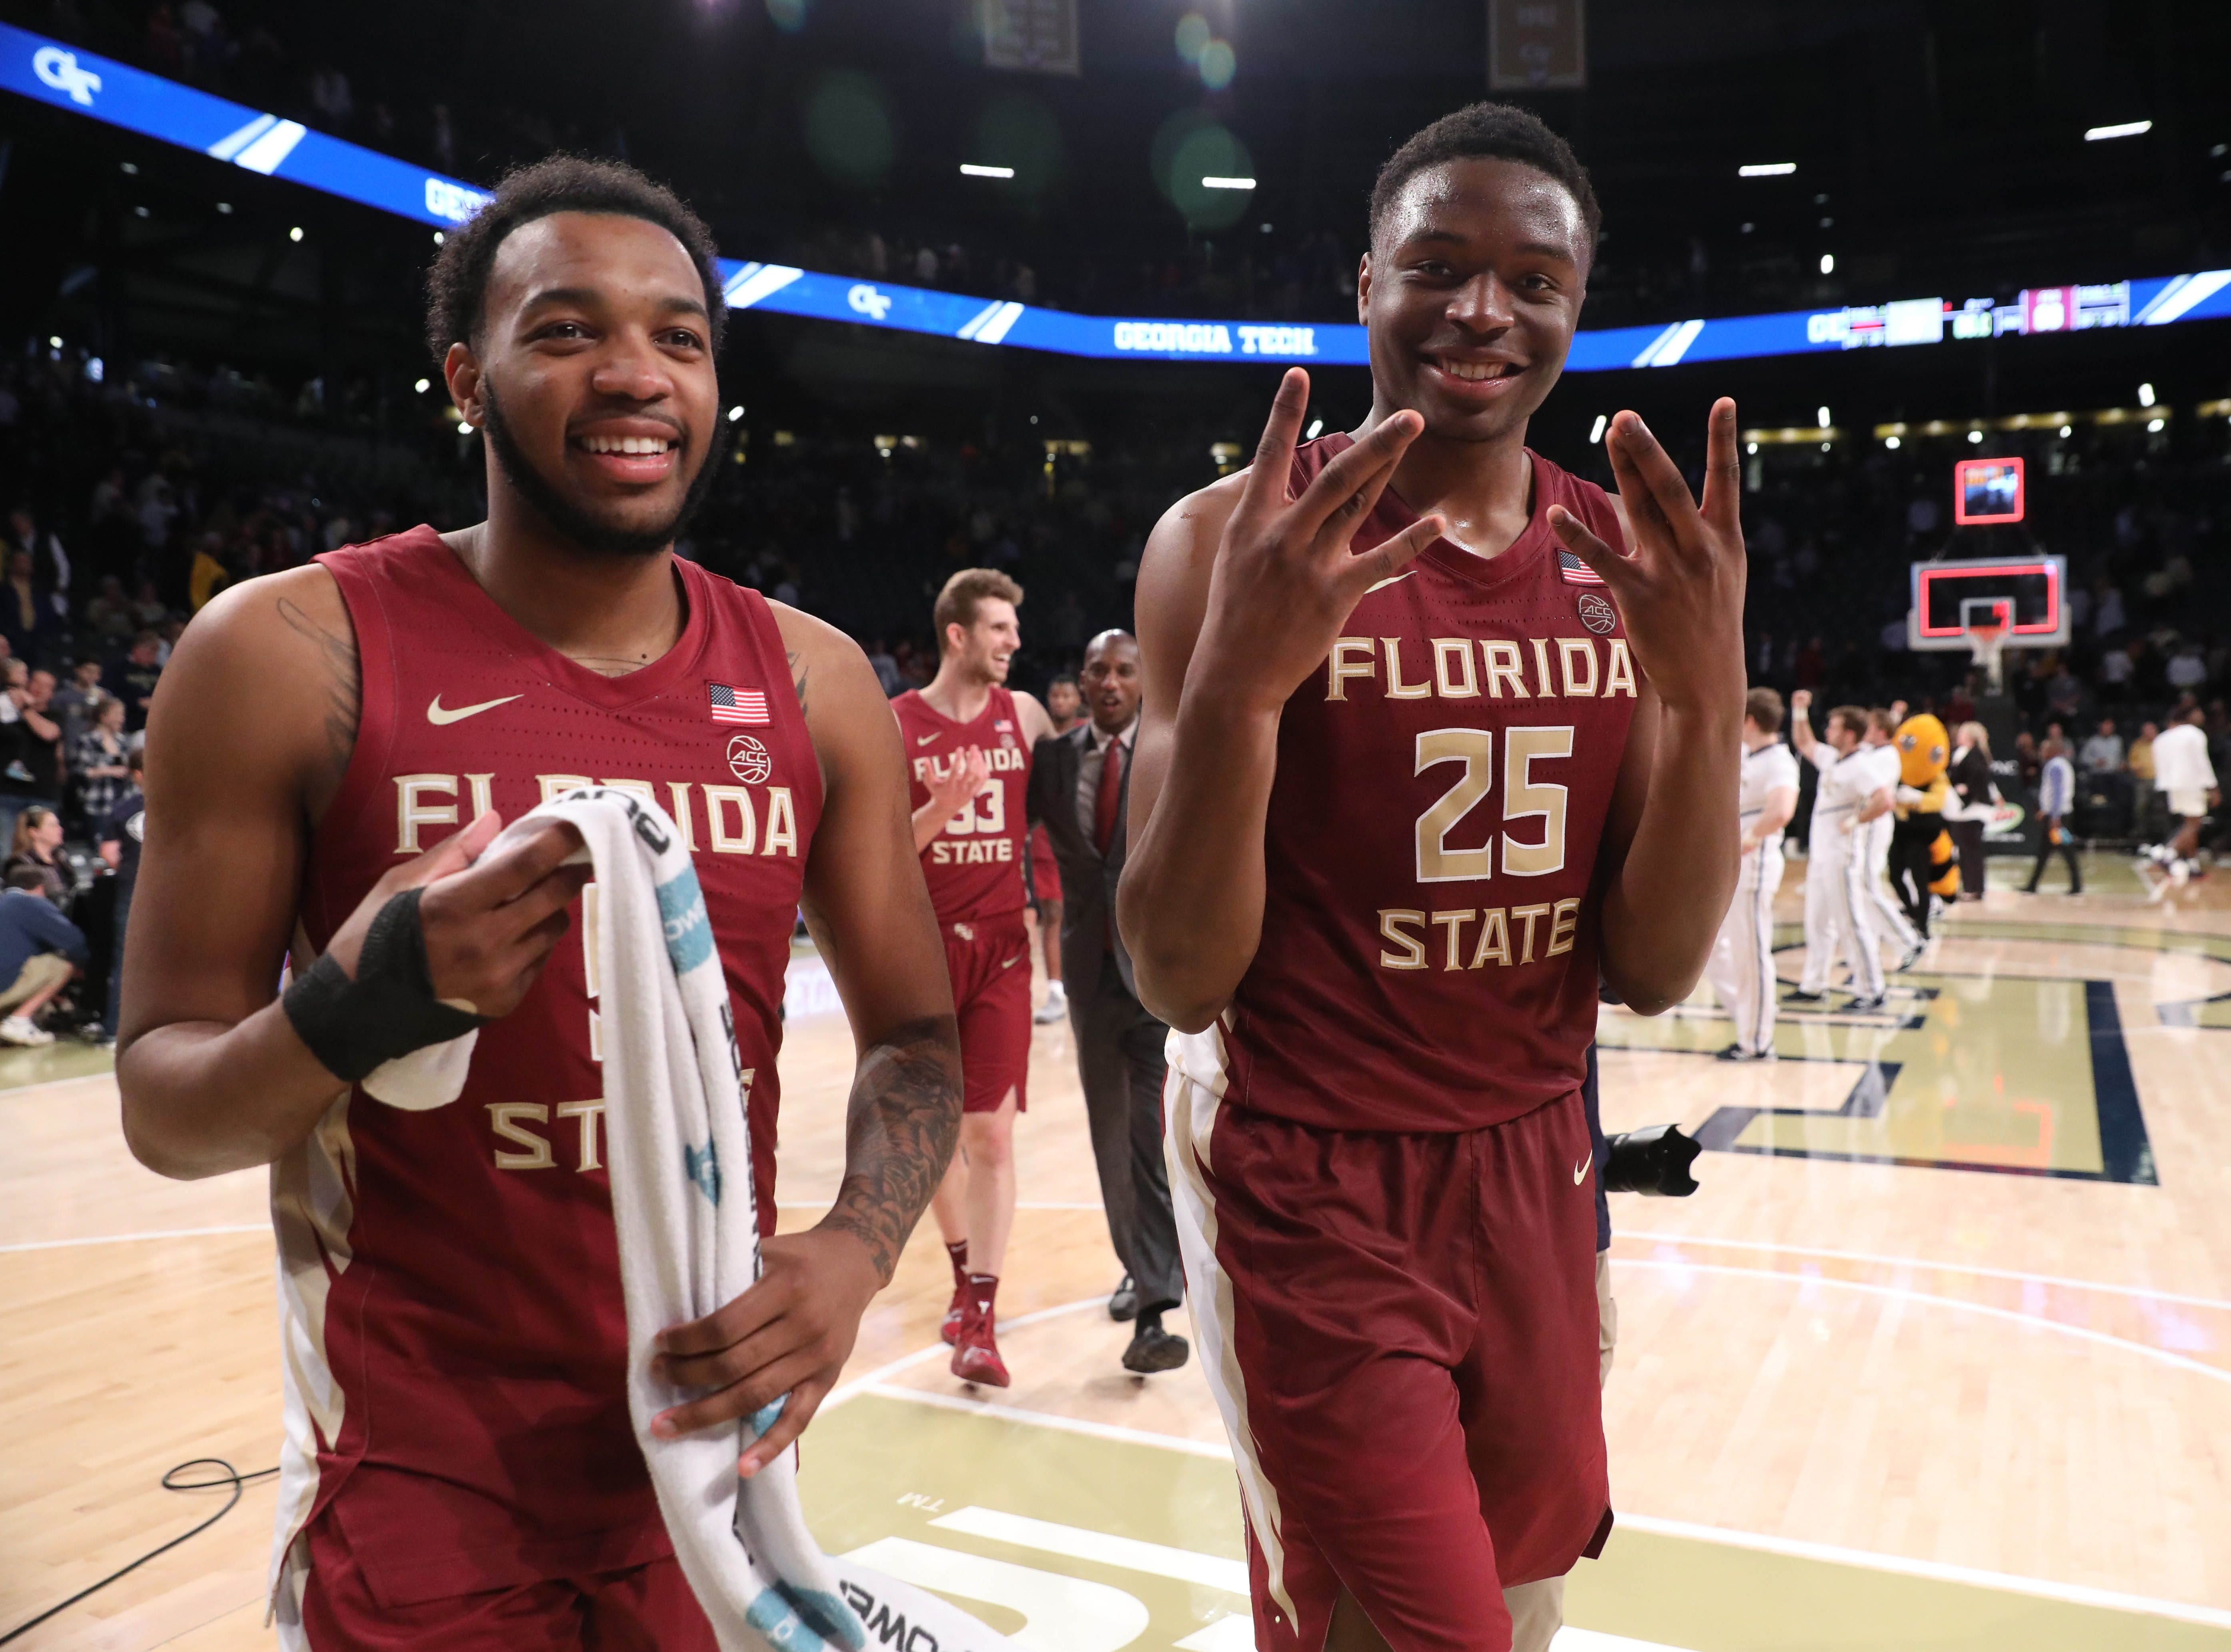 Feb 16, 2019; Atlanta, GA, USA; Florida State Seminoles guard PJ Savoy (5) and forward Mfiondu Kabengele (25) celebrate their win against the Georgia Tech Yellow Jackets at McCamish Pavilion. Mandatory Credit: Jason Getz-USA TODAY Sports